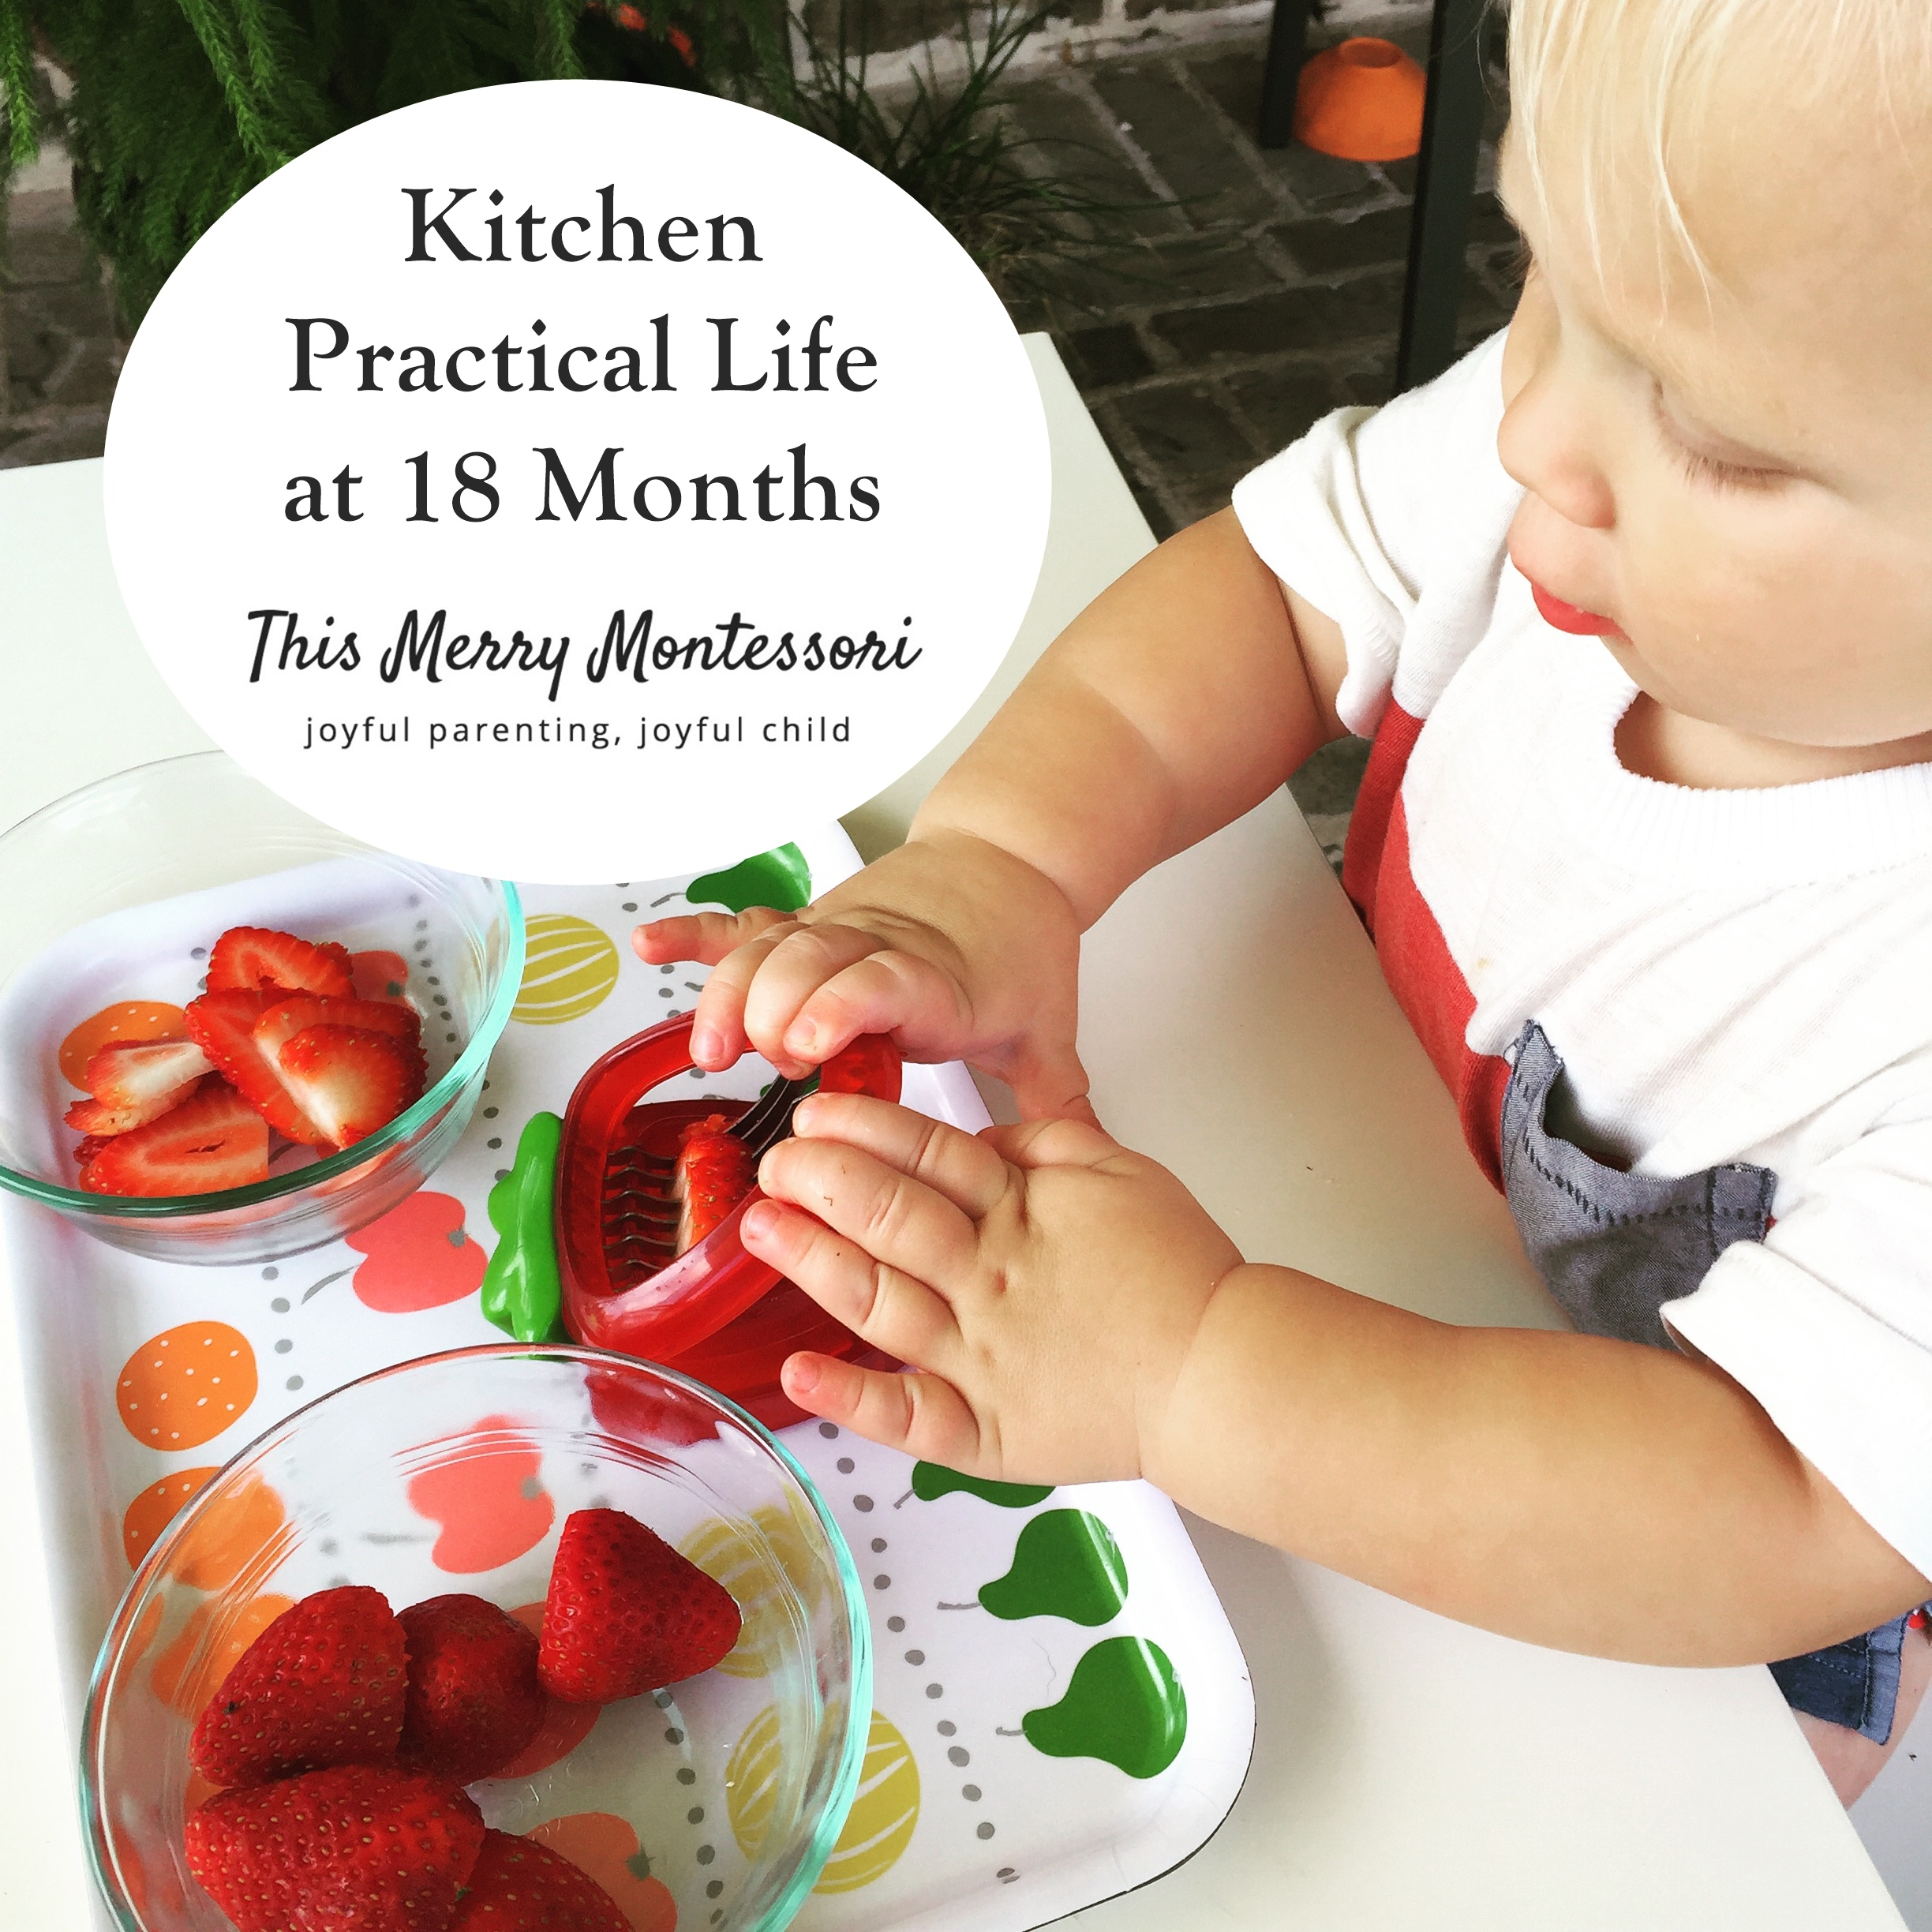 Kitchen Practical Life at 18 Months--This Merry Montessori